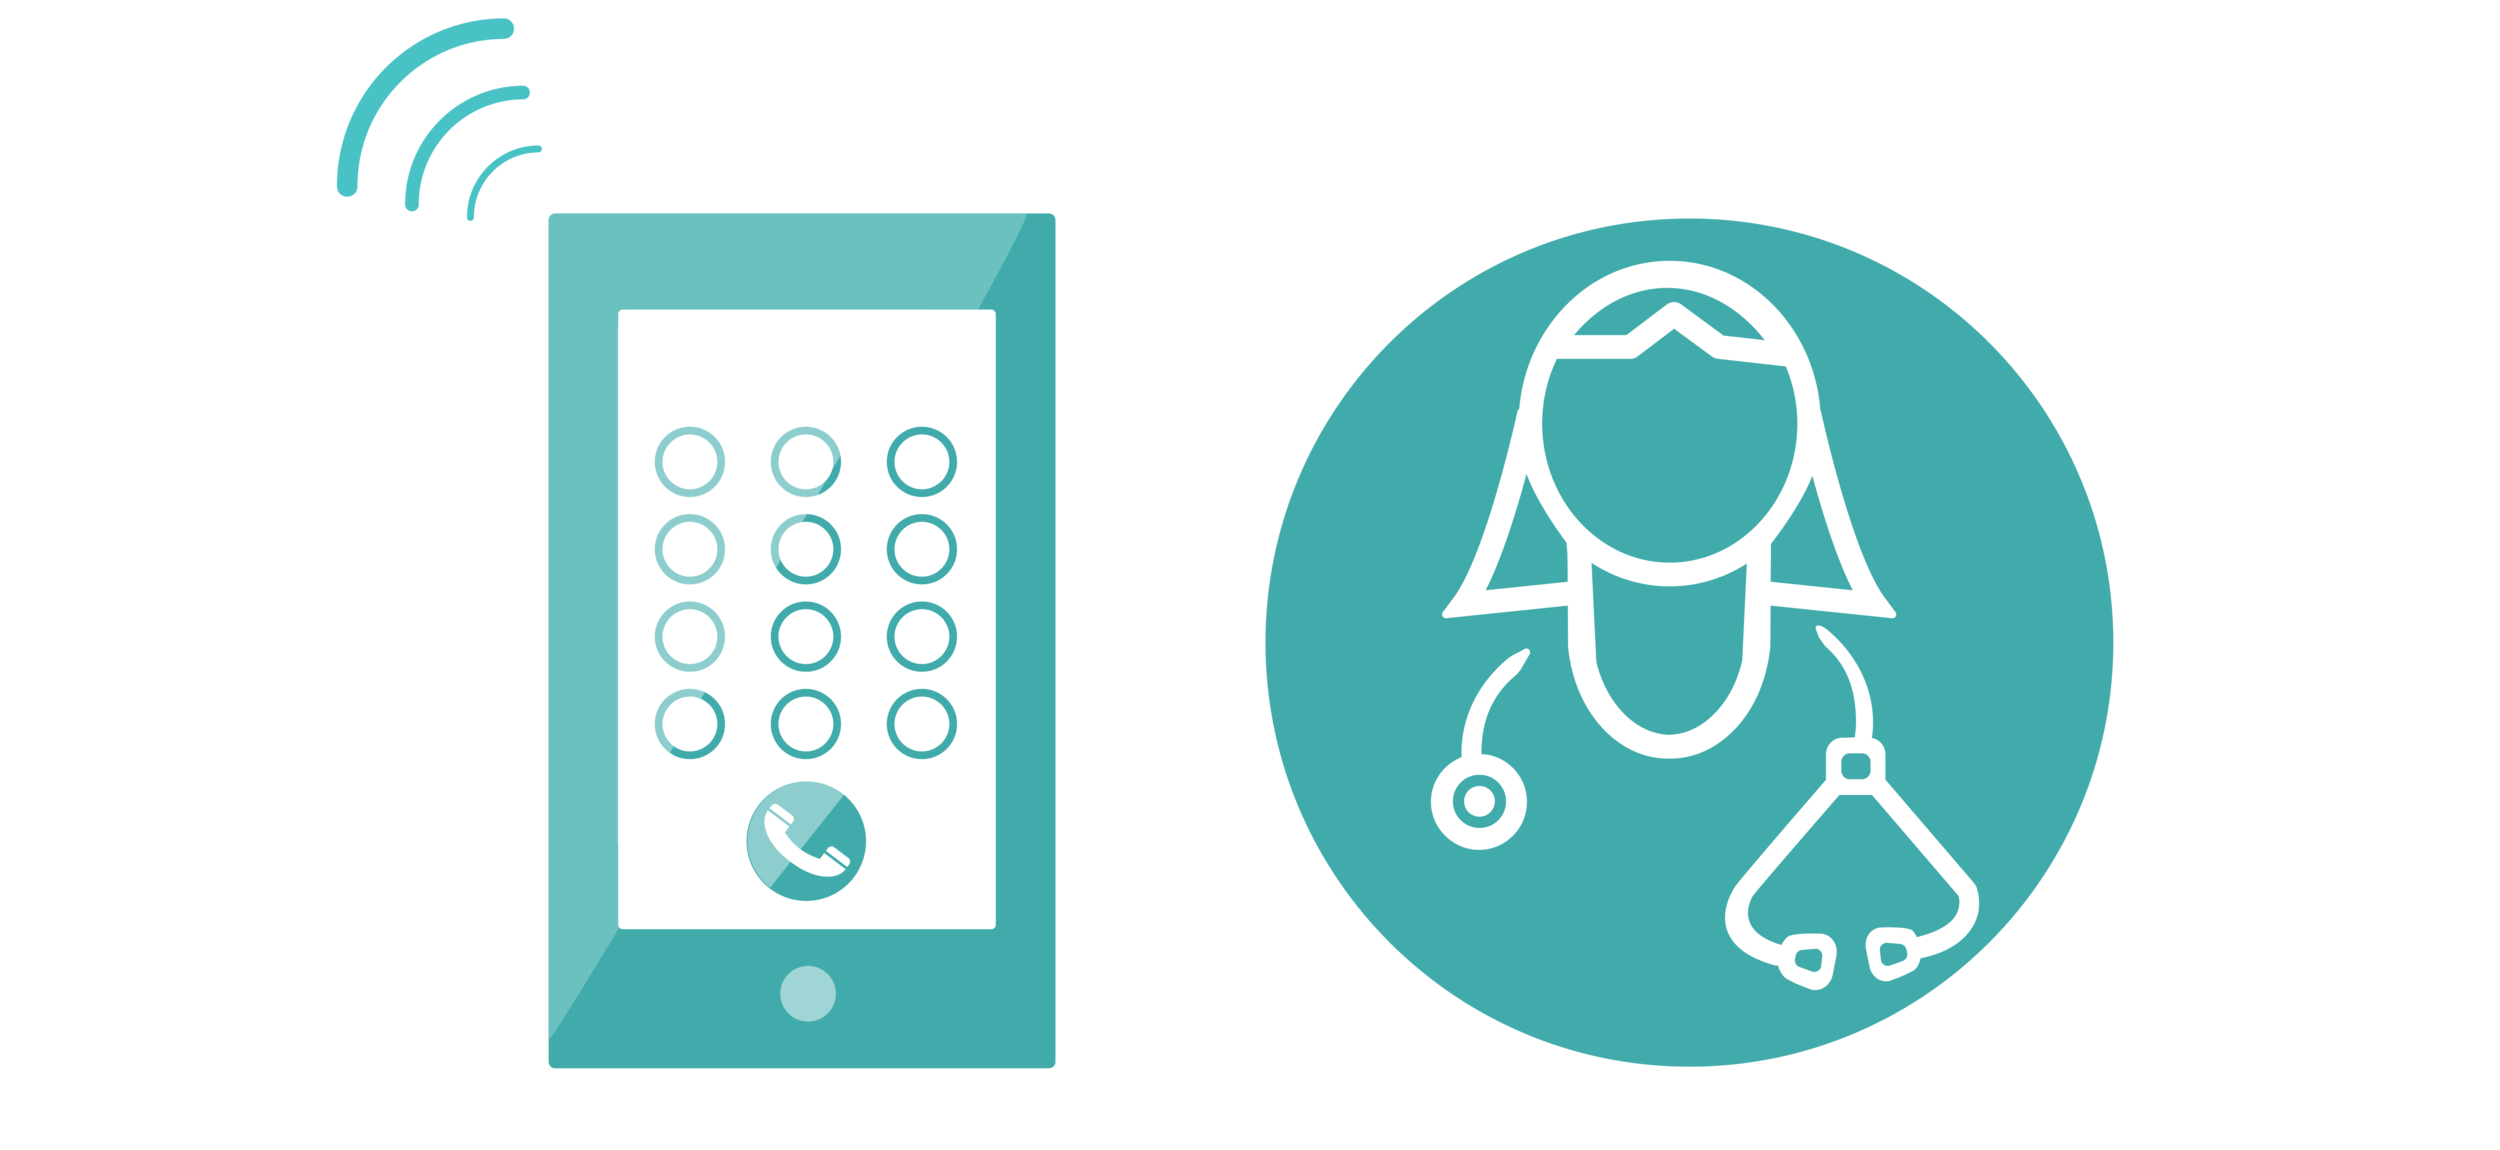 graphic of a cell phone next to graphic of a doctor